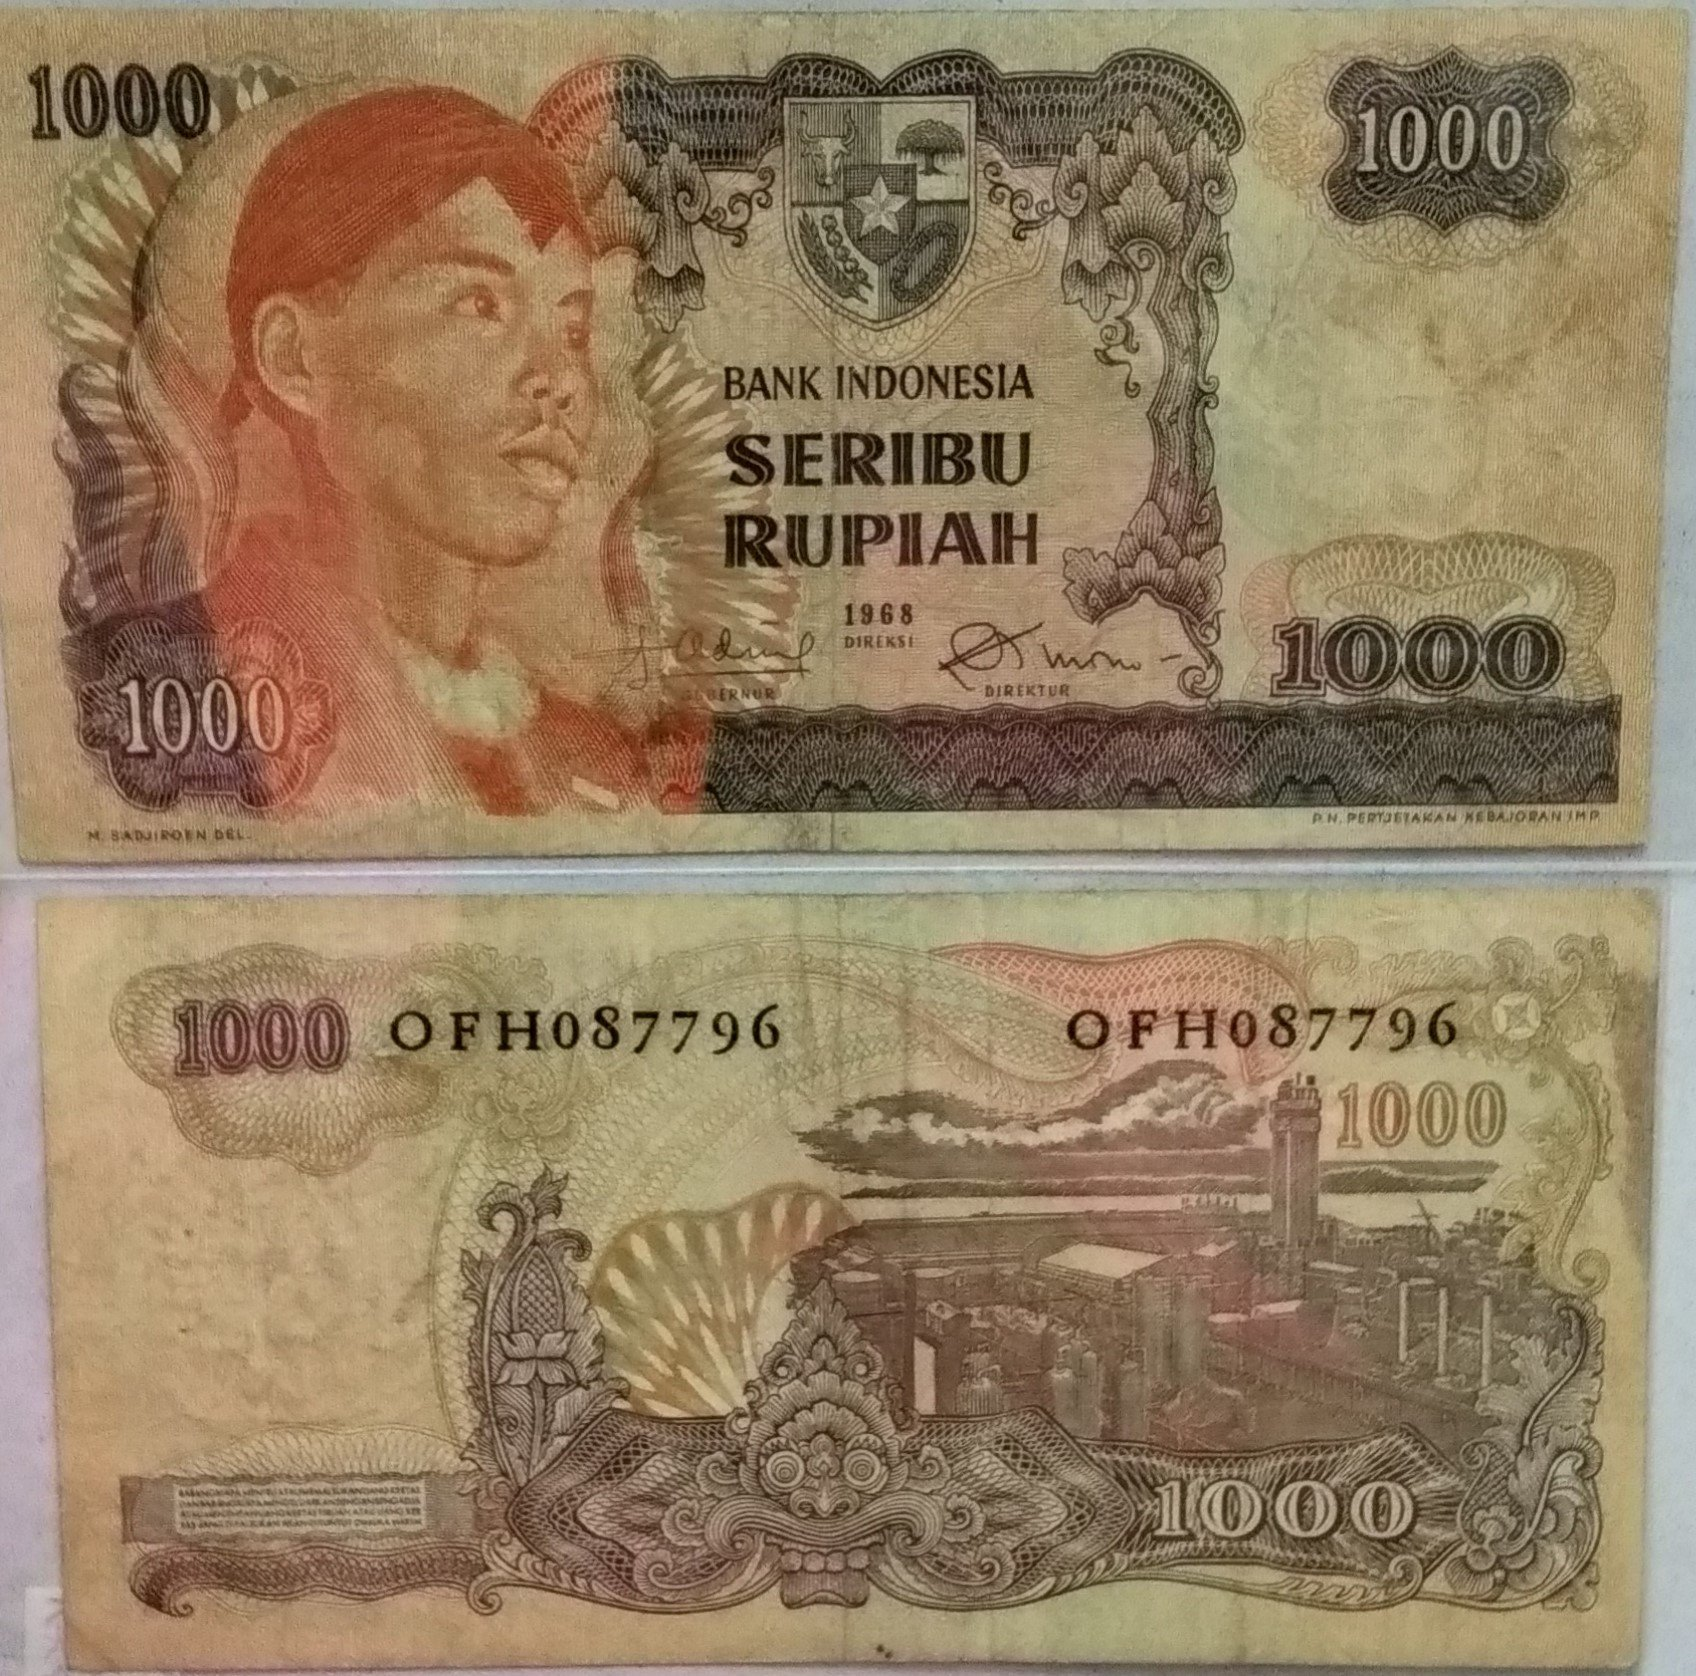 Indonesia 1000 rupiah 1968 banknote for sale